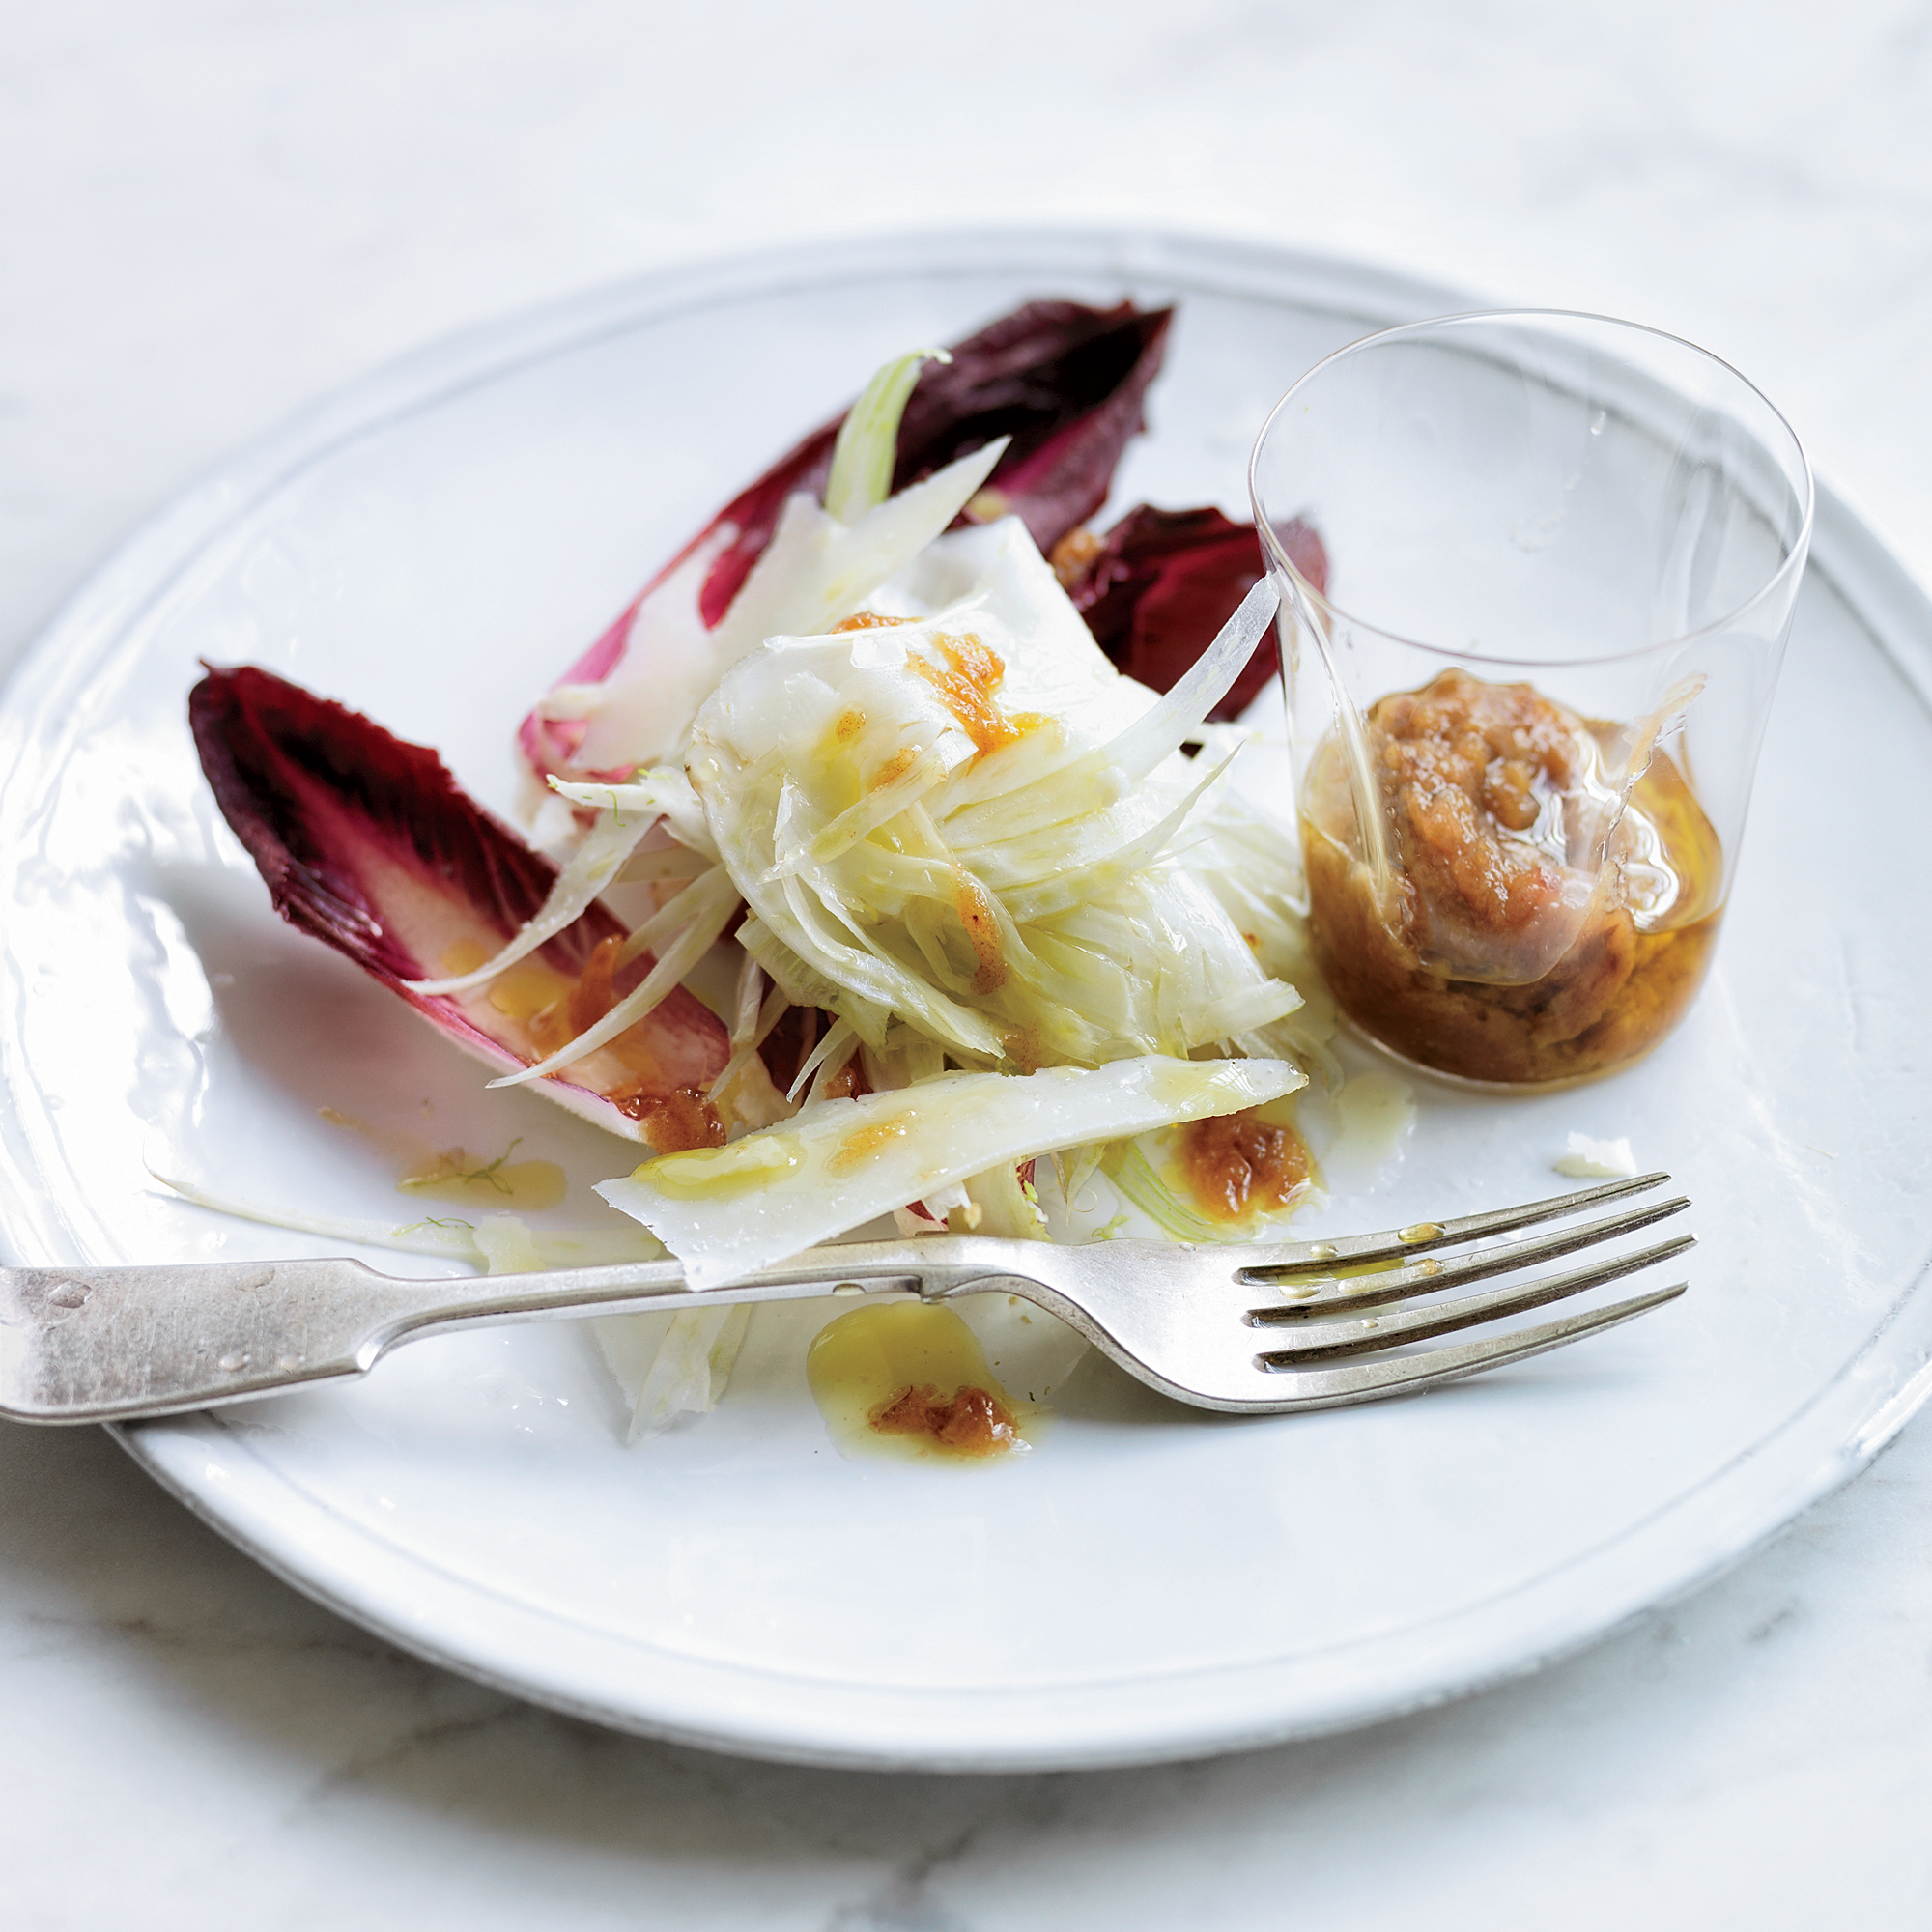 Red Endive & Fennel Salad with Anchovy-Date Dressing